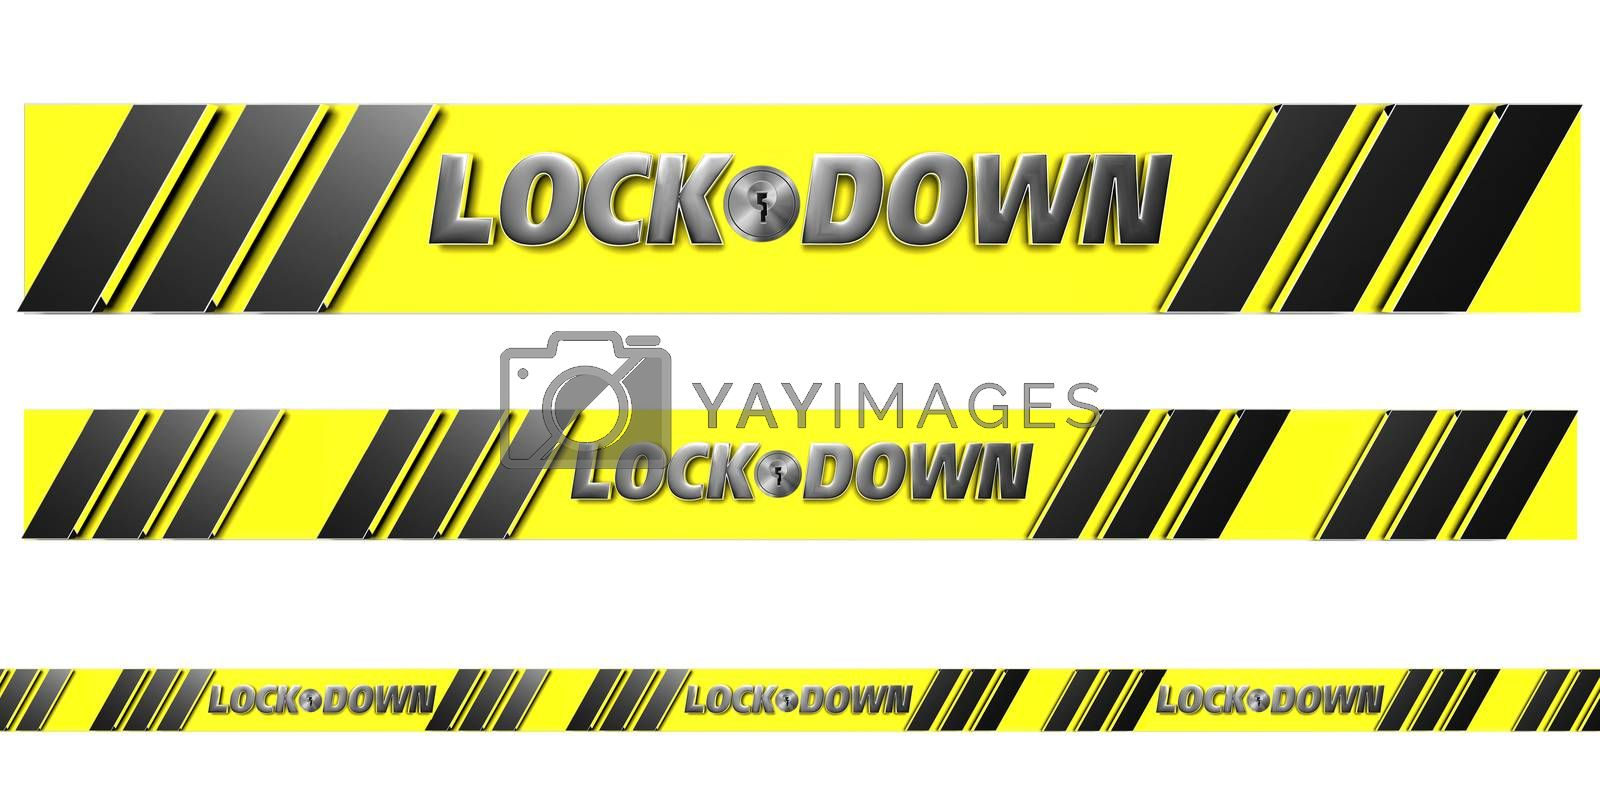 No entry area strip Is a 3D illustration lockdown area isolated on a white background. (With Clipping Path).